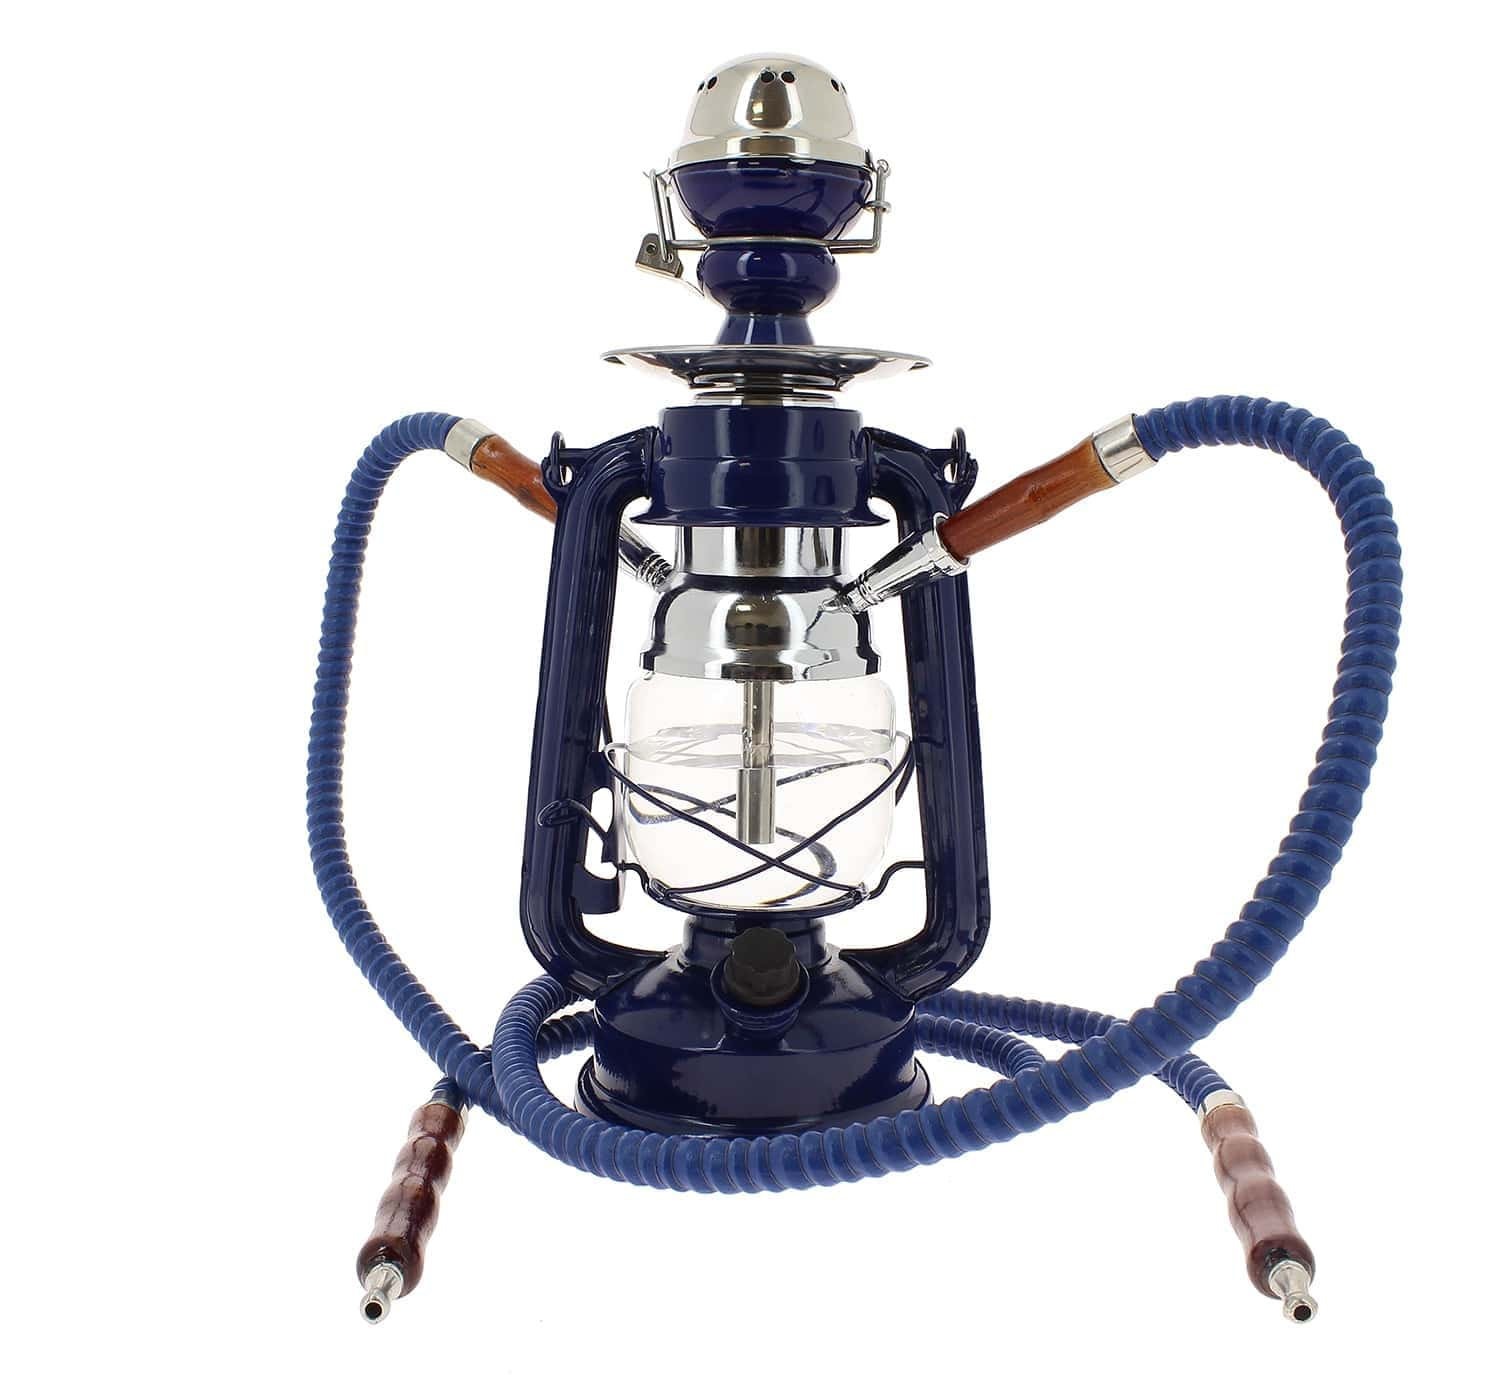 Bleue Pétrole Coney À Lampe Led Chicha K3cu5TlF1J